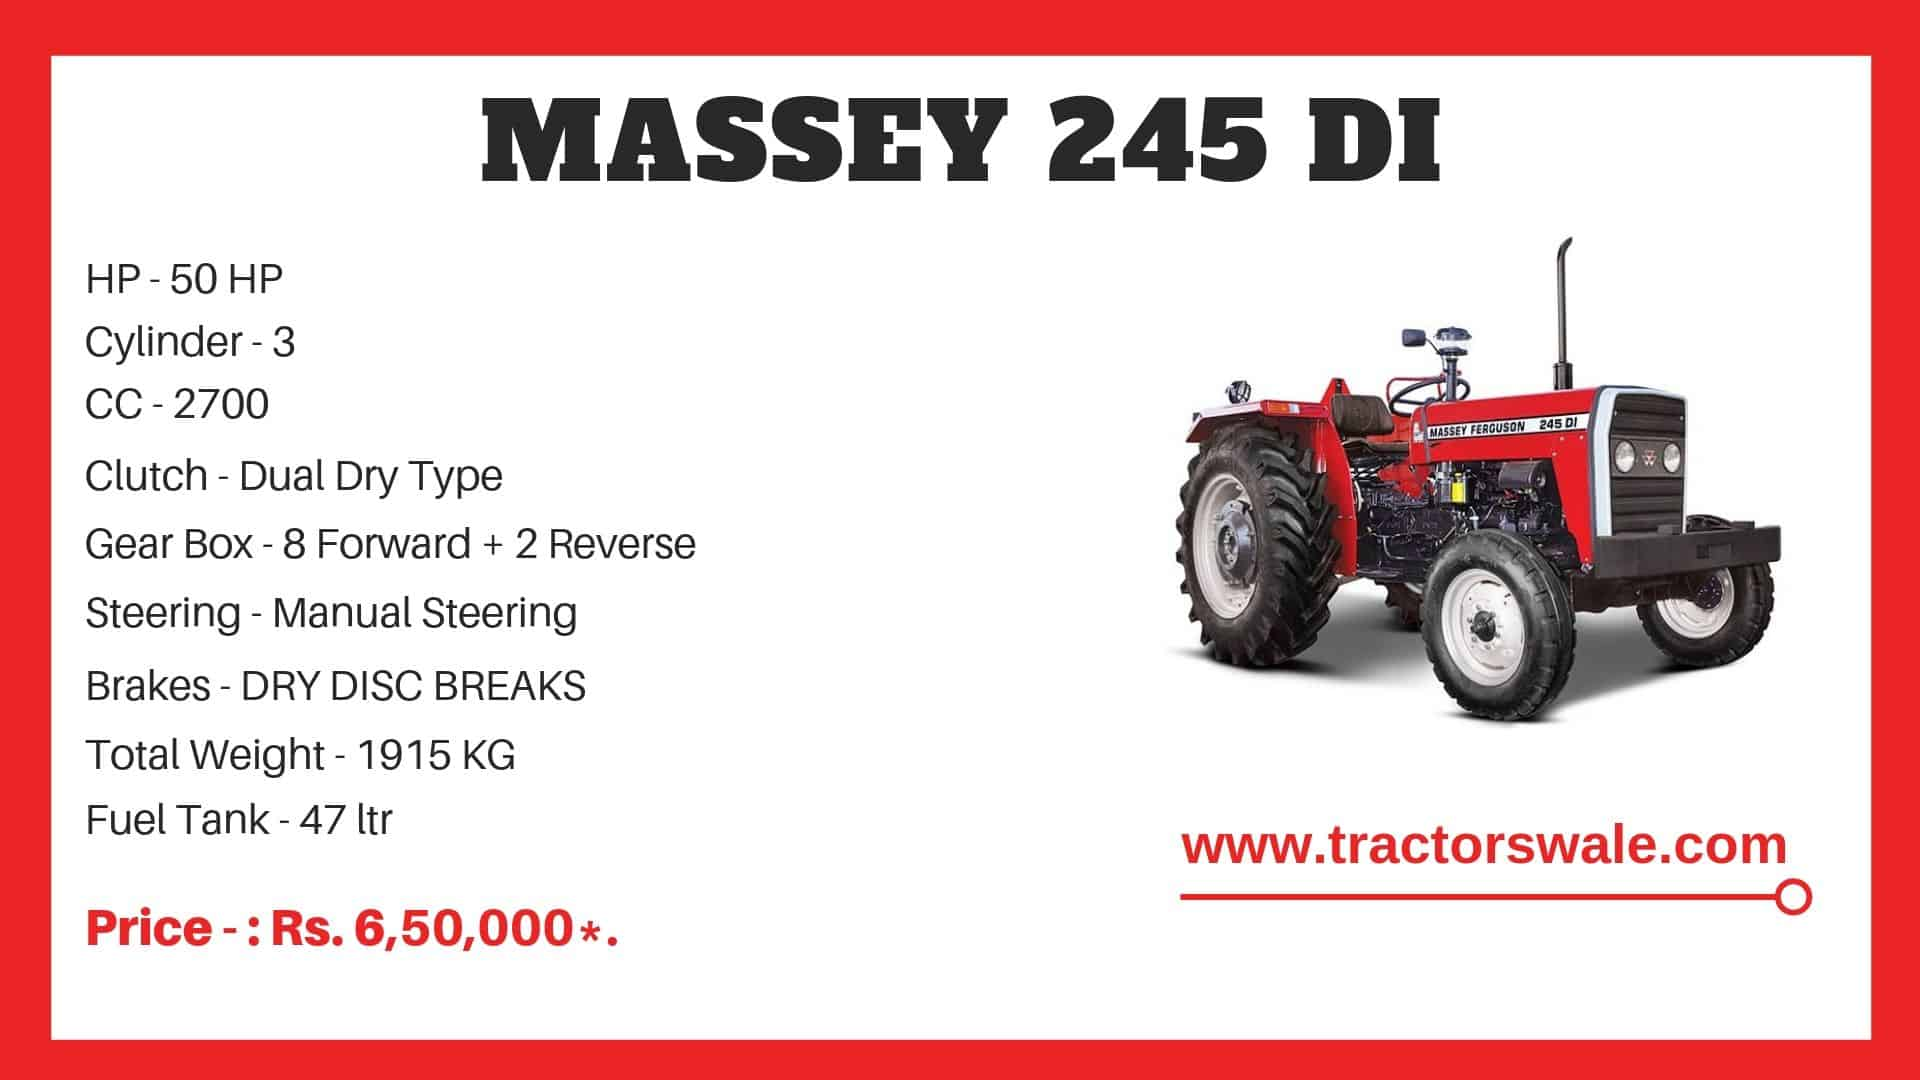 Massey Ferguson 245 DI Specifications